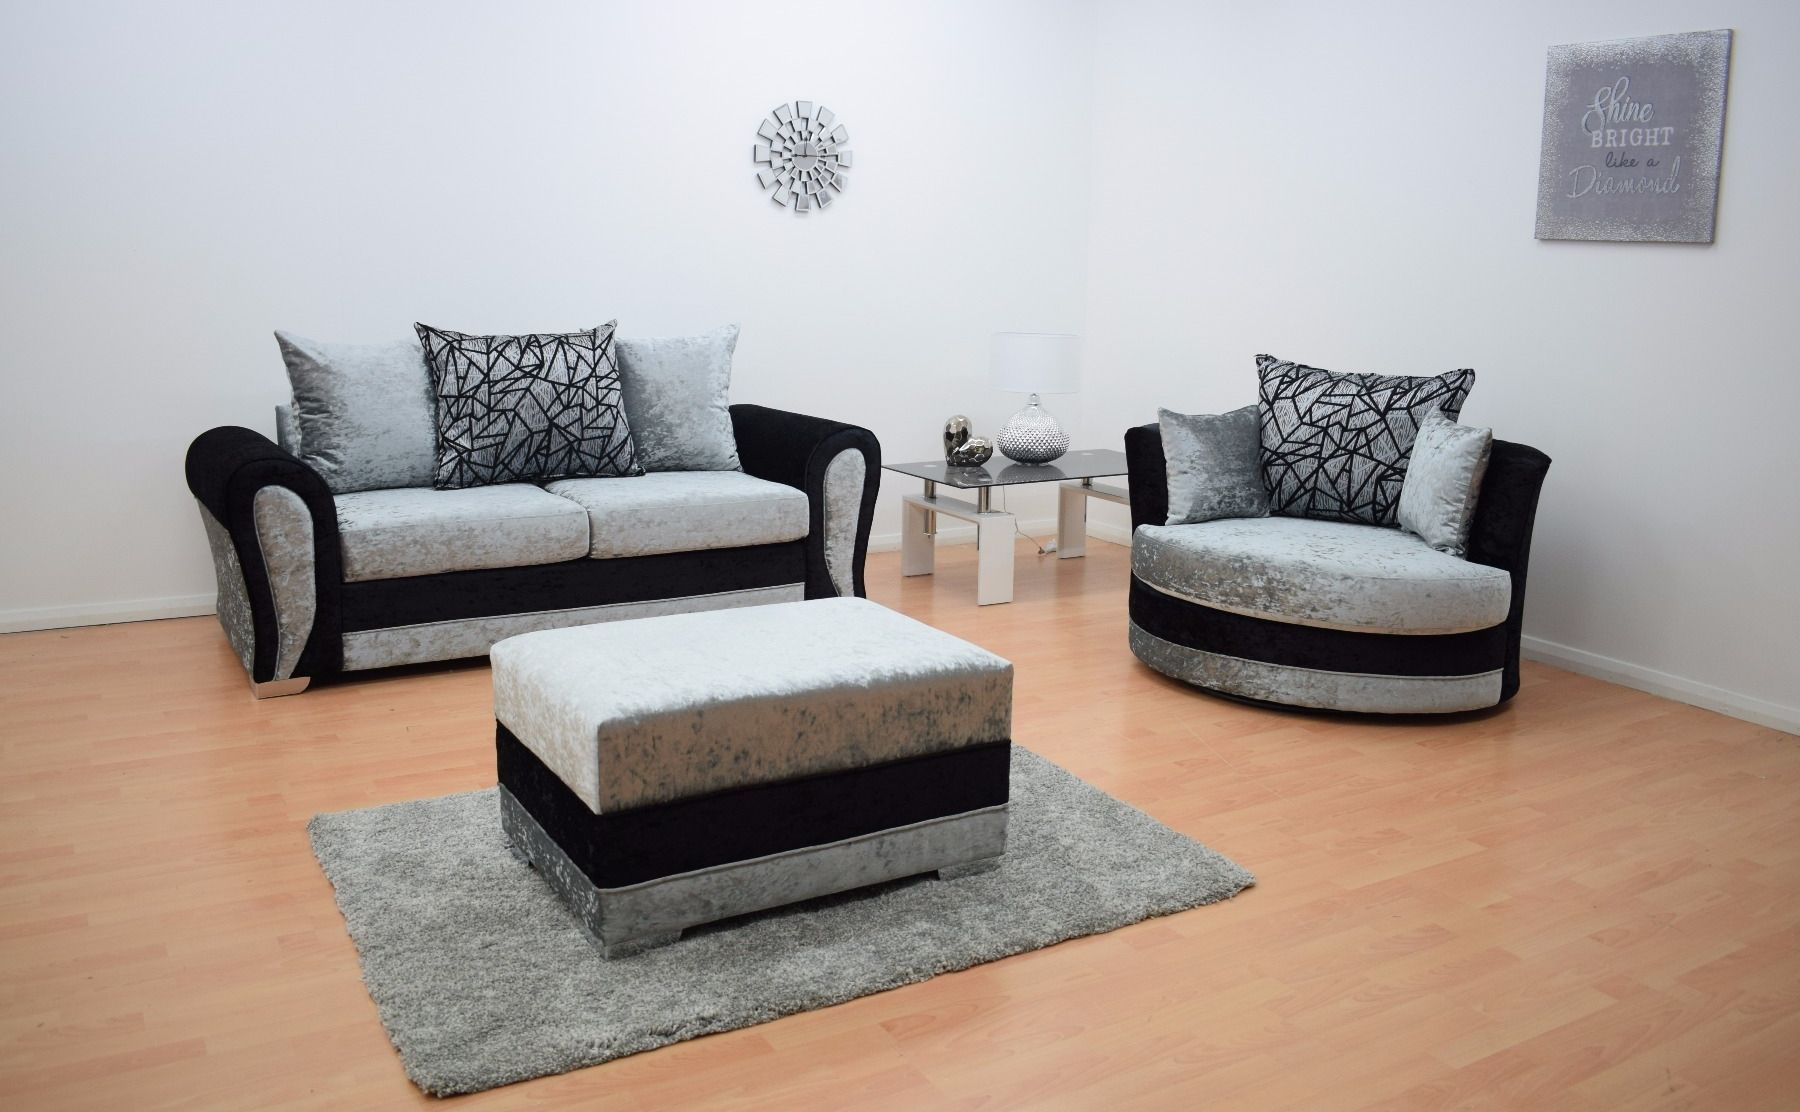 Paris Velvet 3 Seater Hand Crafted sofa & Cuddle Chair with Footstool - Black & Silver